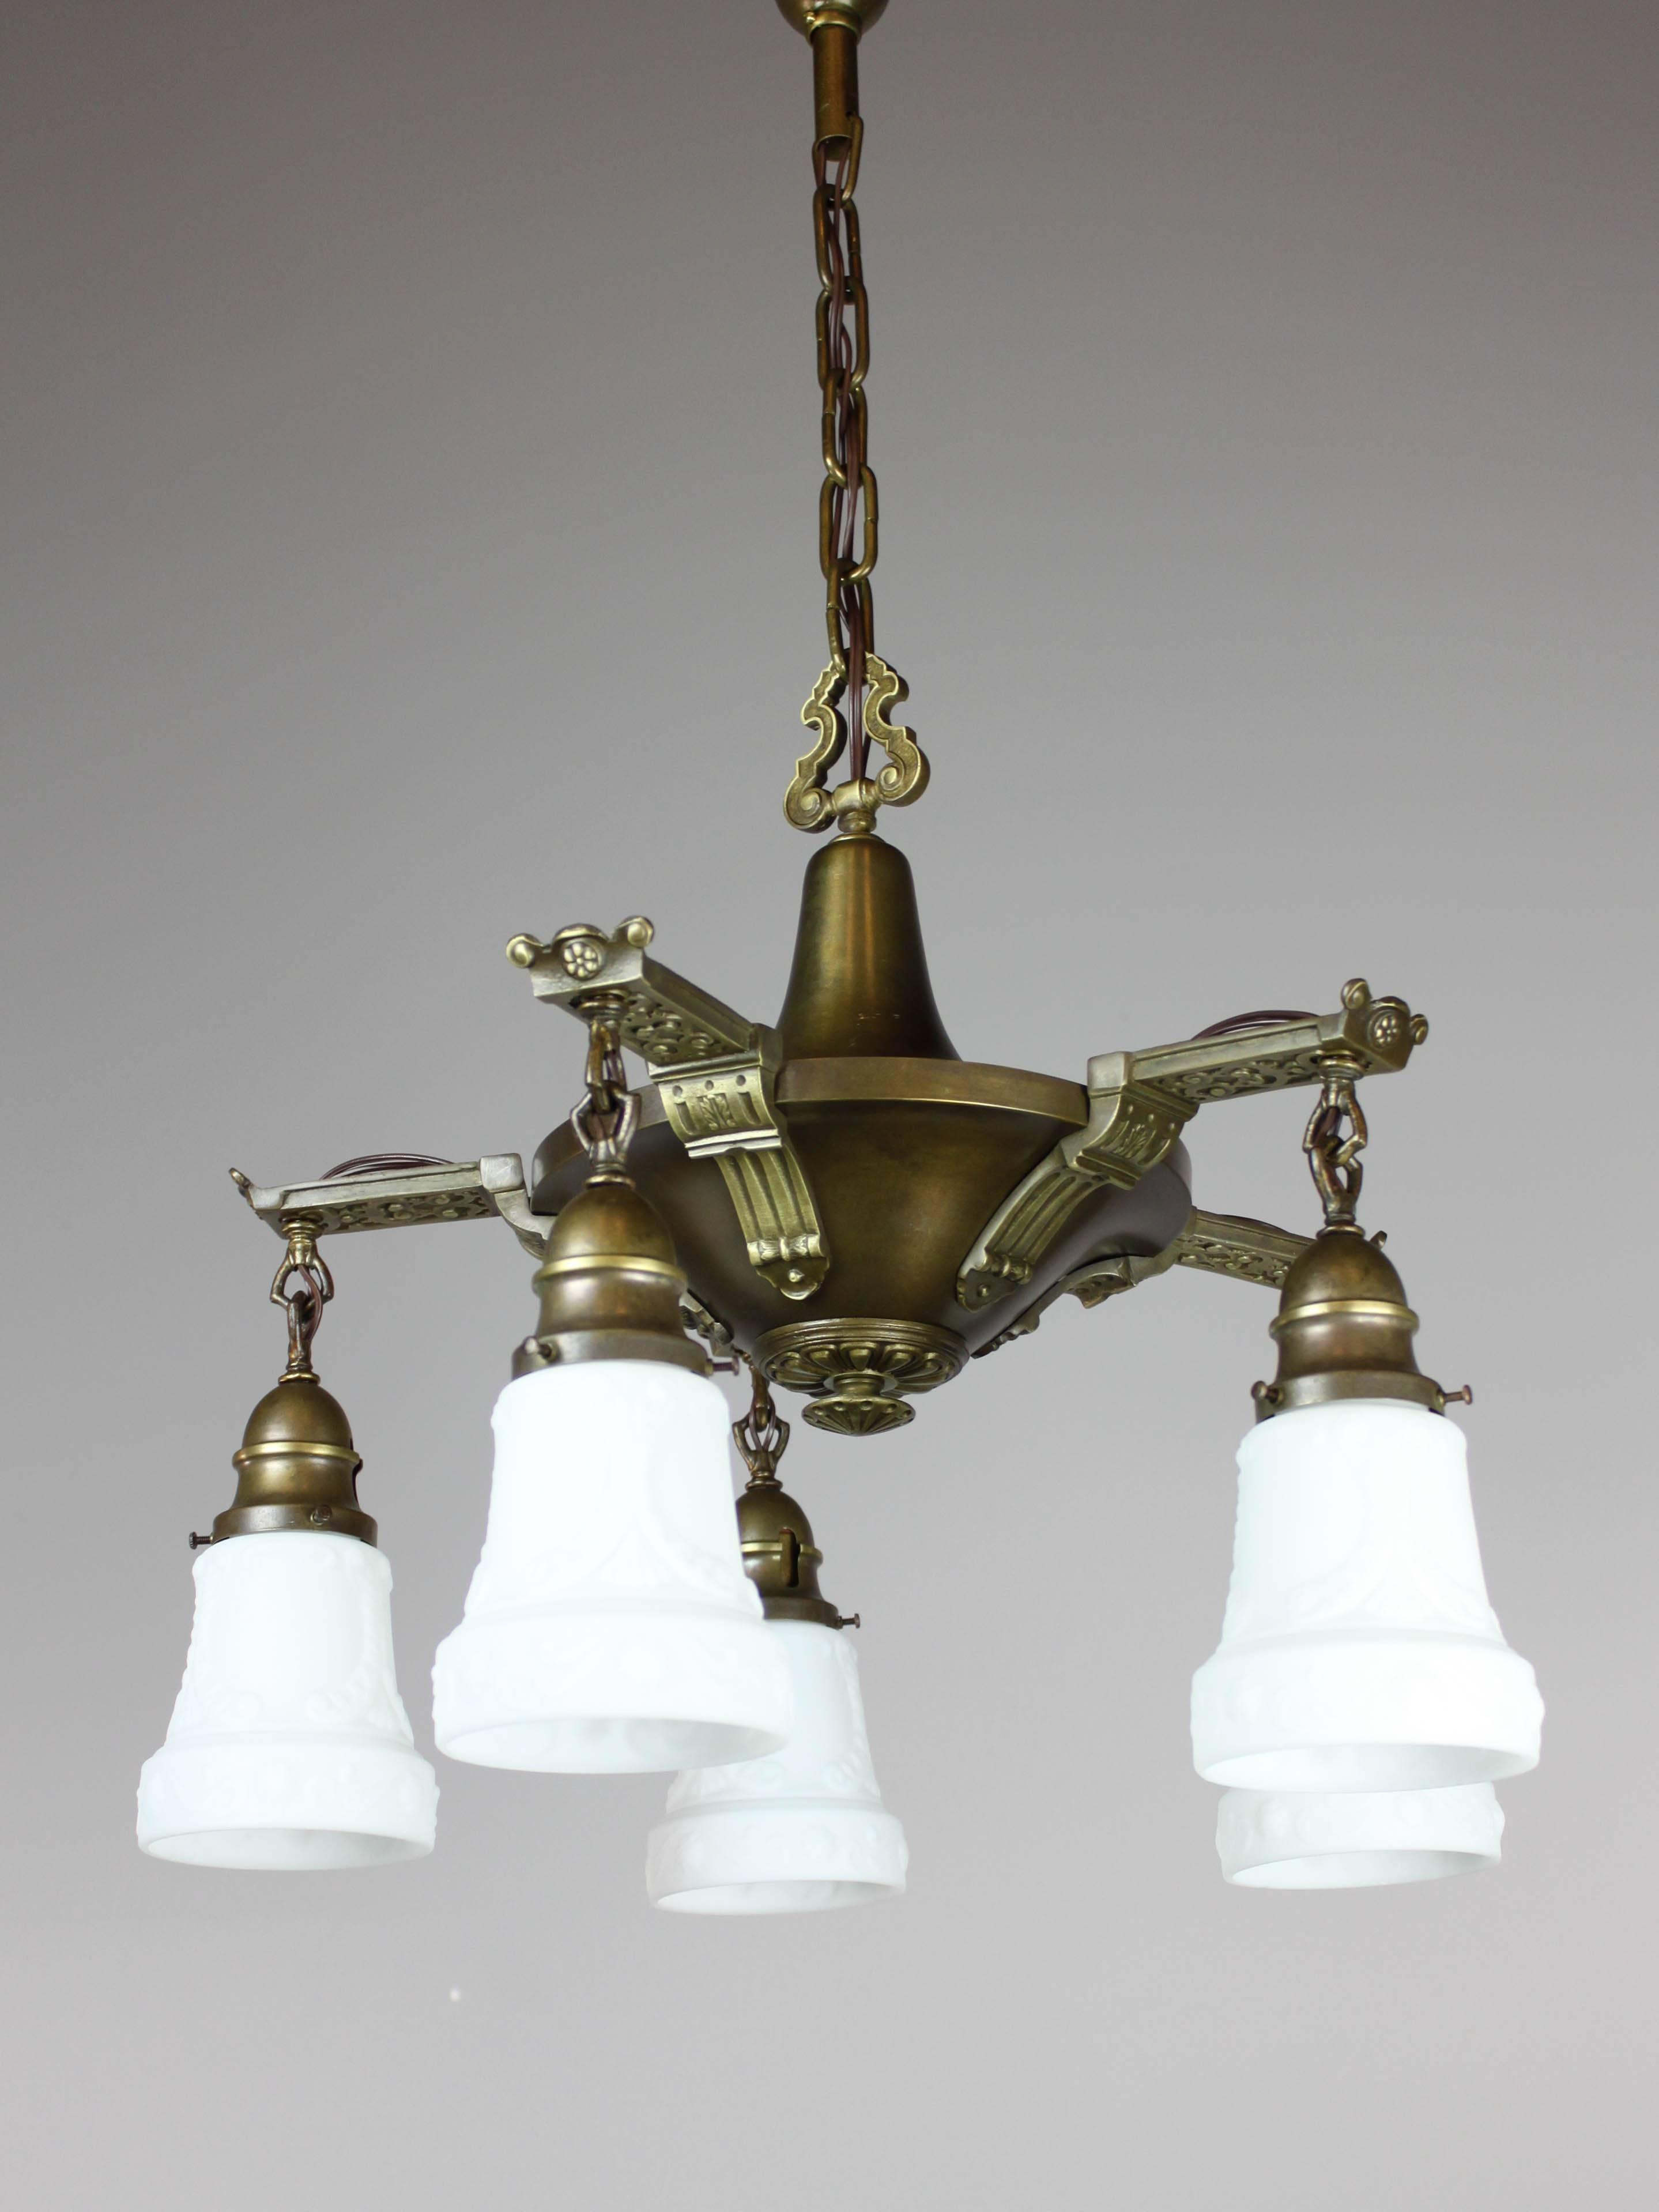 Antique Edwardian Pan Light Fixture (5-Light) | intended for Edwardian Lights Fixtures (Image 4 of 15)